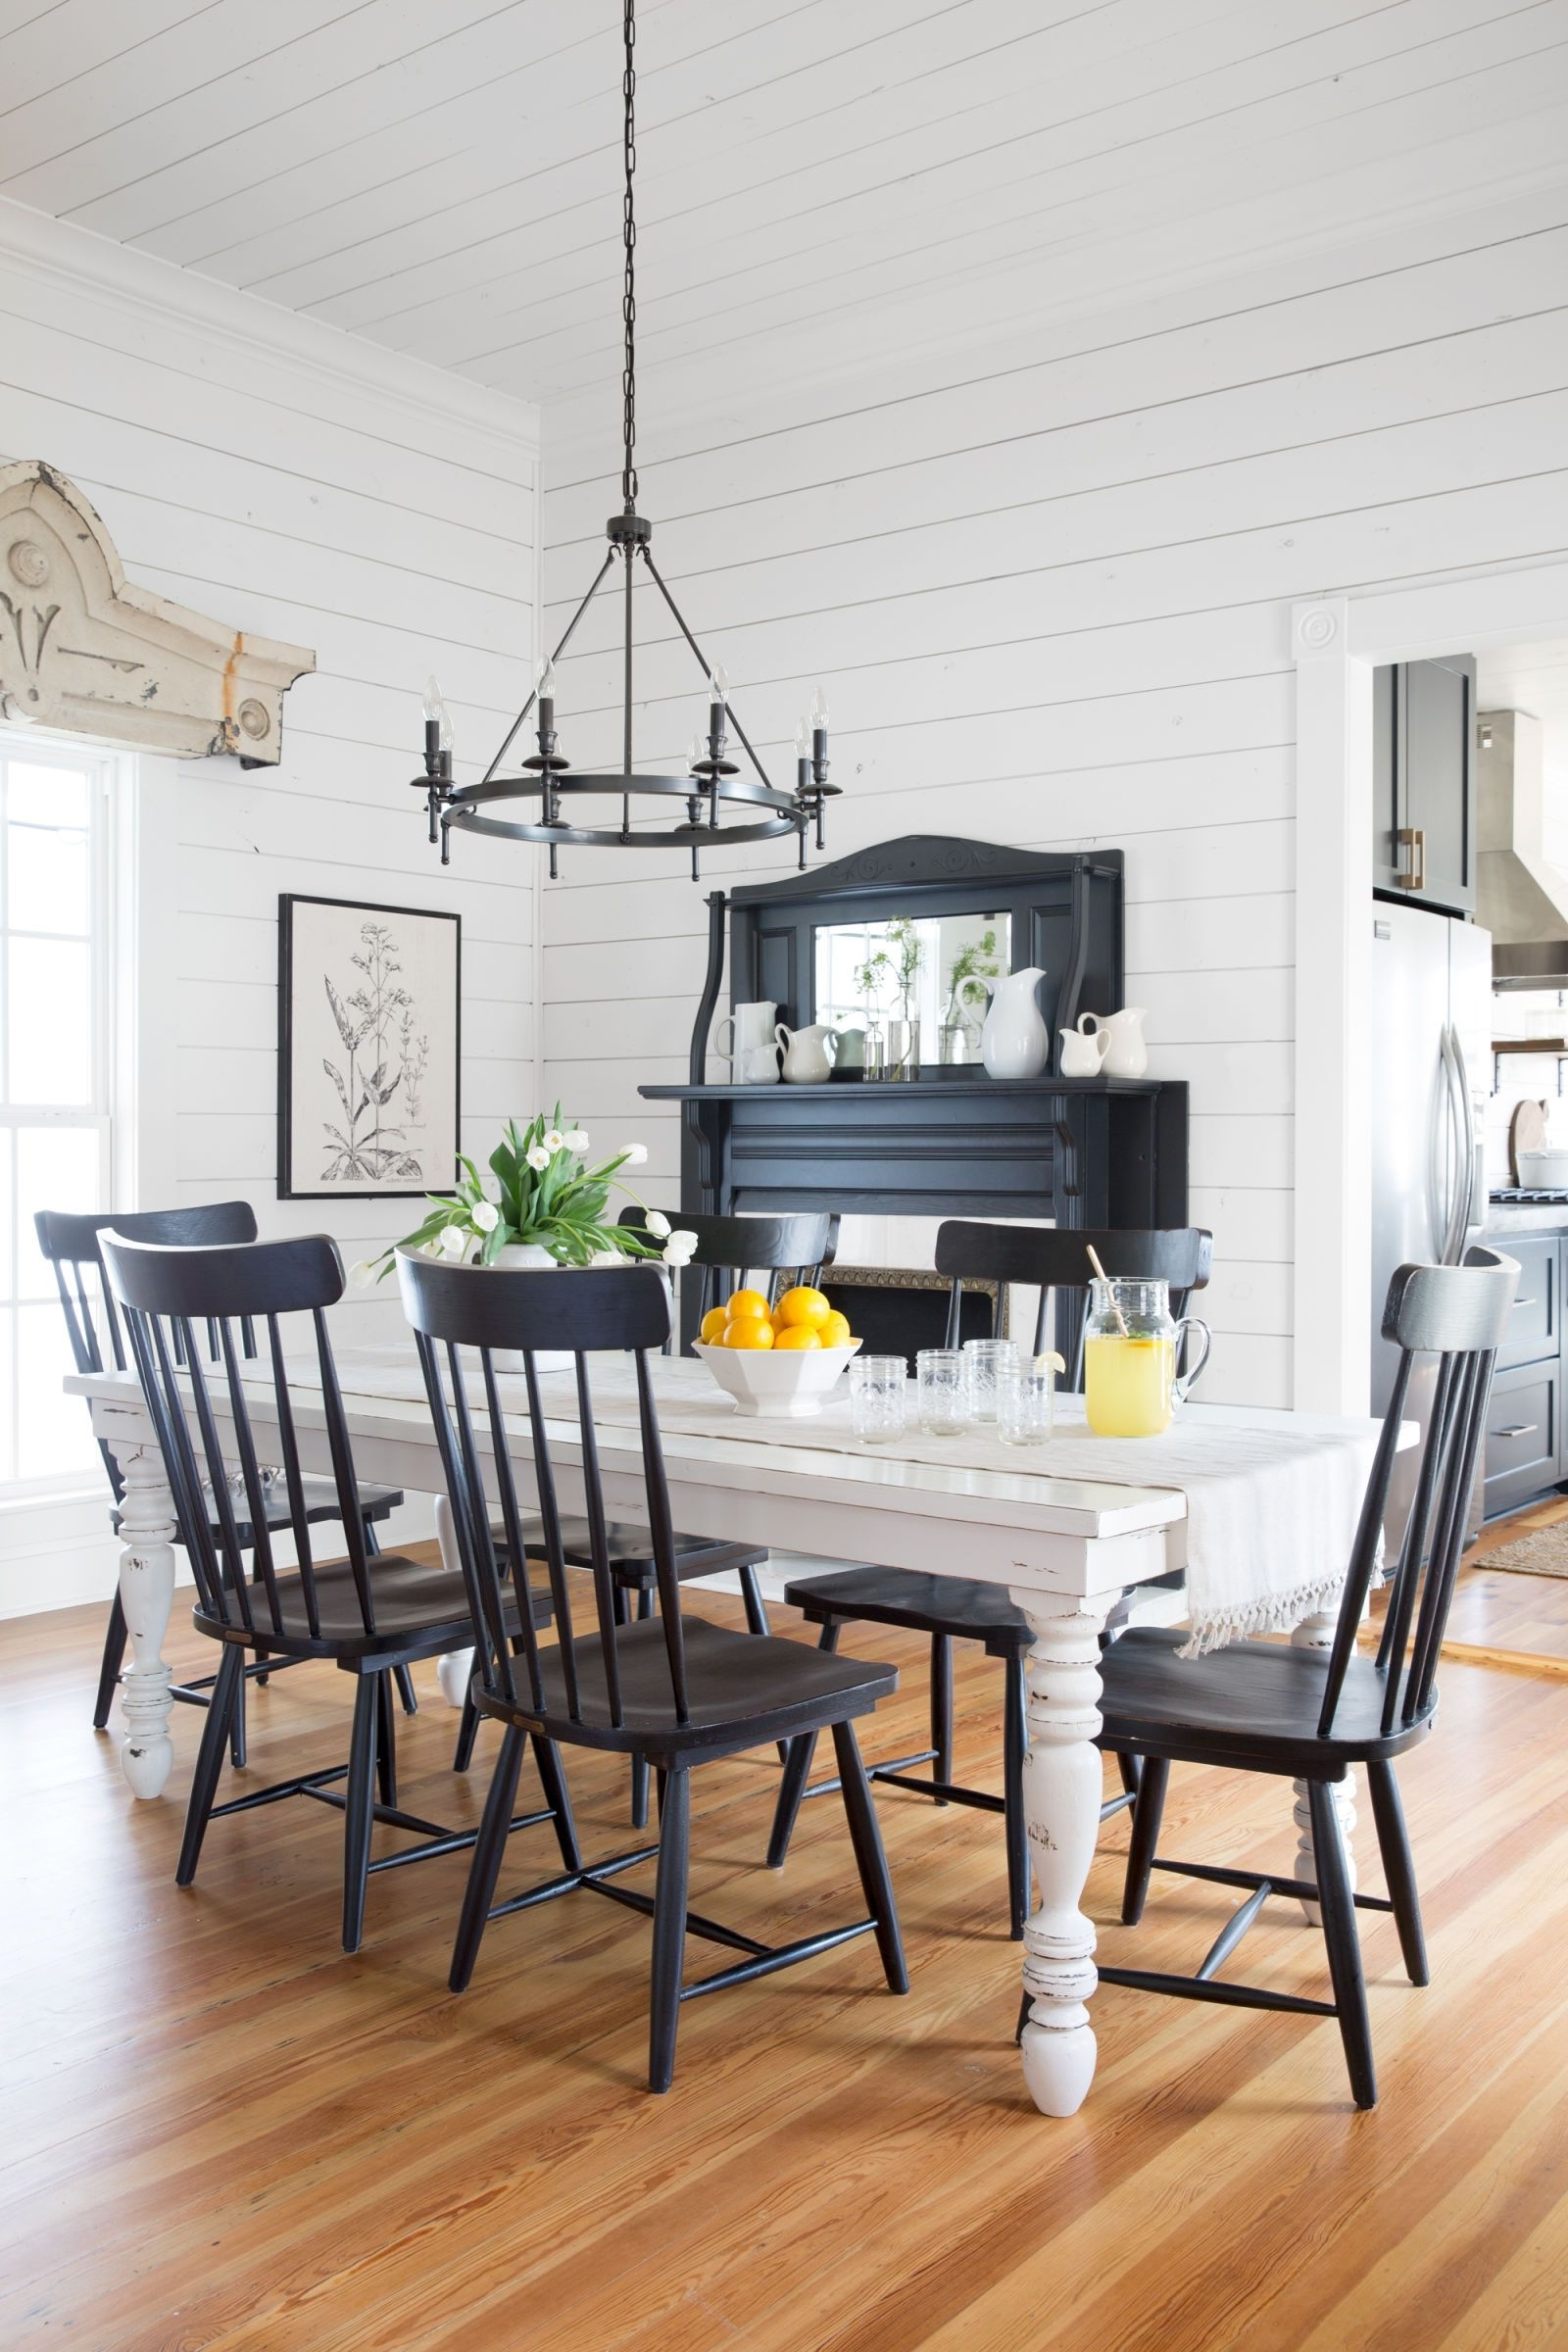 Fashionable Magnolia Home Breakfast Round Black Dining Tables Intended For Take A Tour Of Chip And Joanna Gaines' Magnolia House B&b (View 4 of 25)